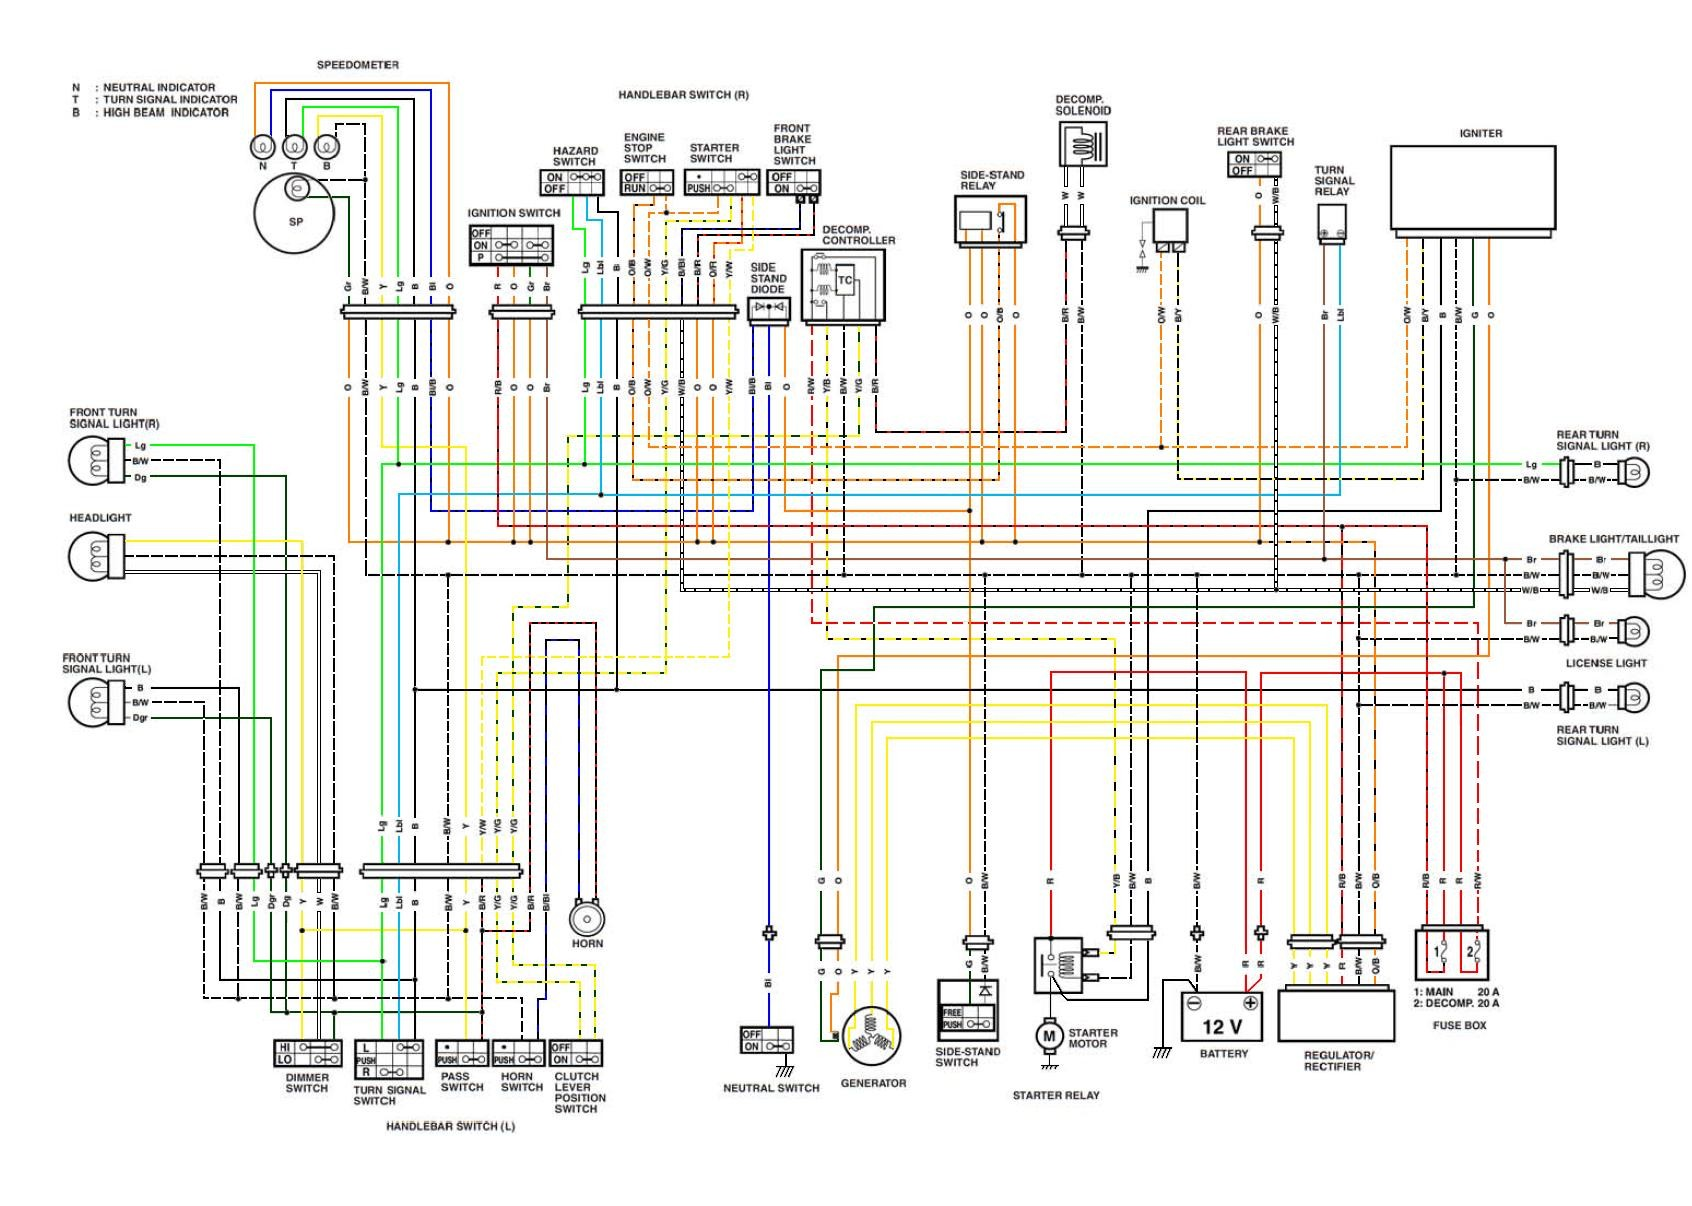 Wiring Diagram 84 Harley Sportster - Wiring Diagram Source on simple harley wiring diagram, 2001 sportster ignition system diagram, 1200 custom wiring diagram, harley-davidson golf cart wiring diagram, split unit air conditioner wiring diagram, ducati 998 wiring diagram, chevrolet ssr wiring diagram, triumph speed triple wiring diagram, harley-davidson gas tank diagram, harley-davidson ultra classic wiring diagram, honda cbr 600 parts diagram, harley-davidson tail light wiring diagram, harley sportster oil line diagram, harley wiring harness diagram, harley dyna s ignition wiring diagram, 1999 ford explorer electrical wiring diagram, harley-davidson motorcycle parts diagram, harley-davidson street glide parts diagram, harley-davidson street glide wiring diagram, harley starter wiring diagram,